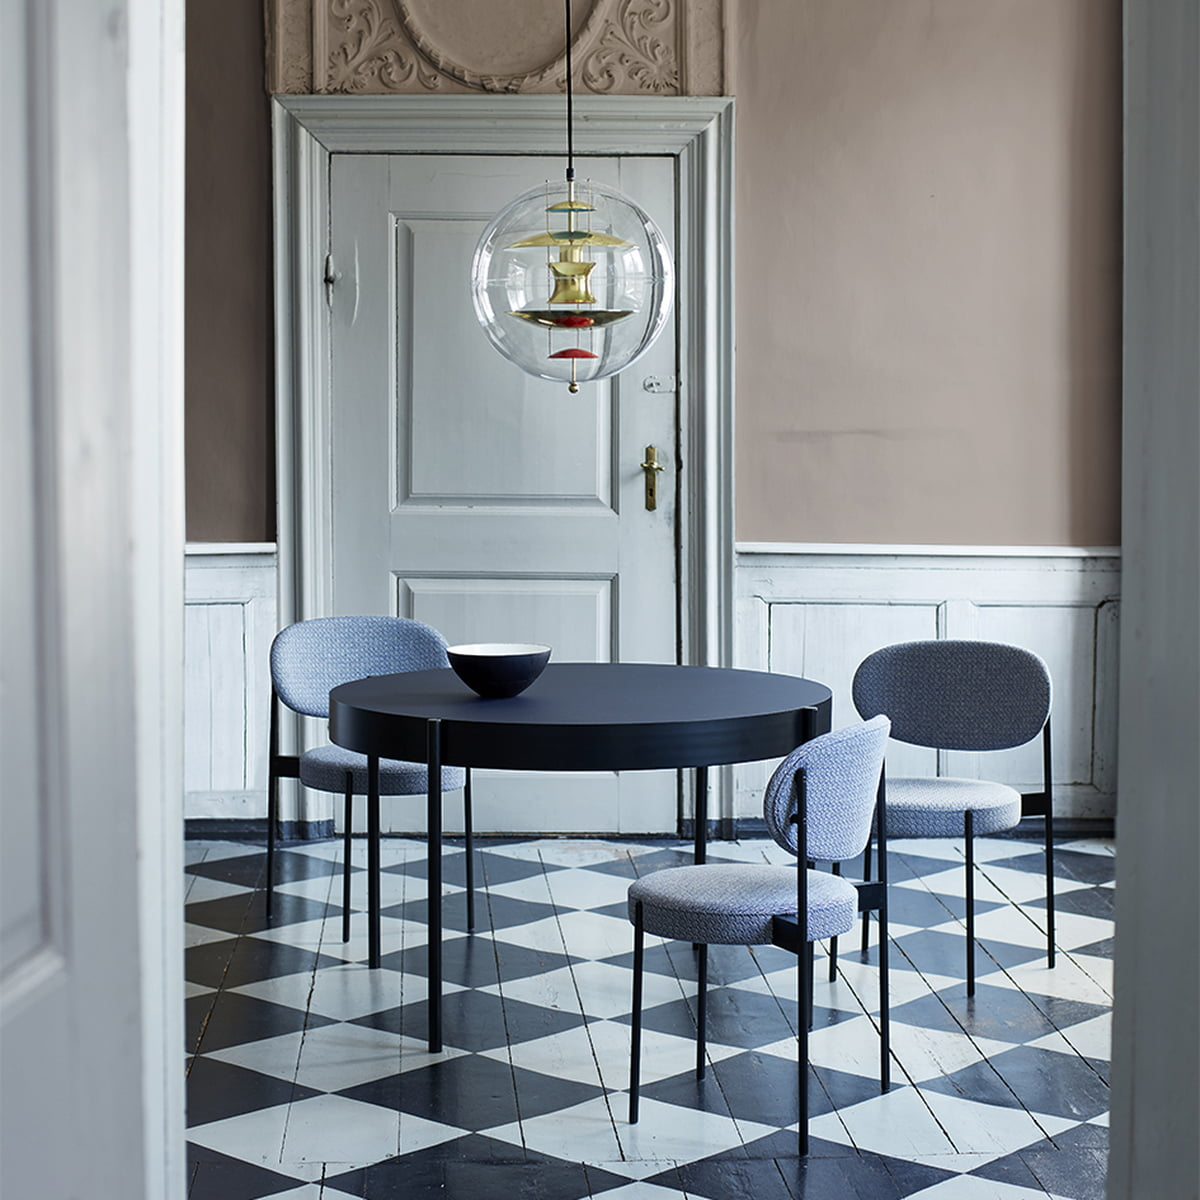 Padded 430 Chair by Verner Panton   Connox